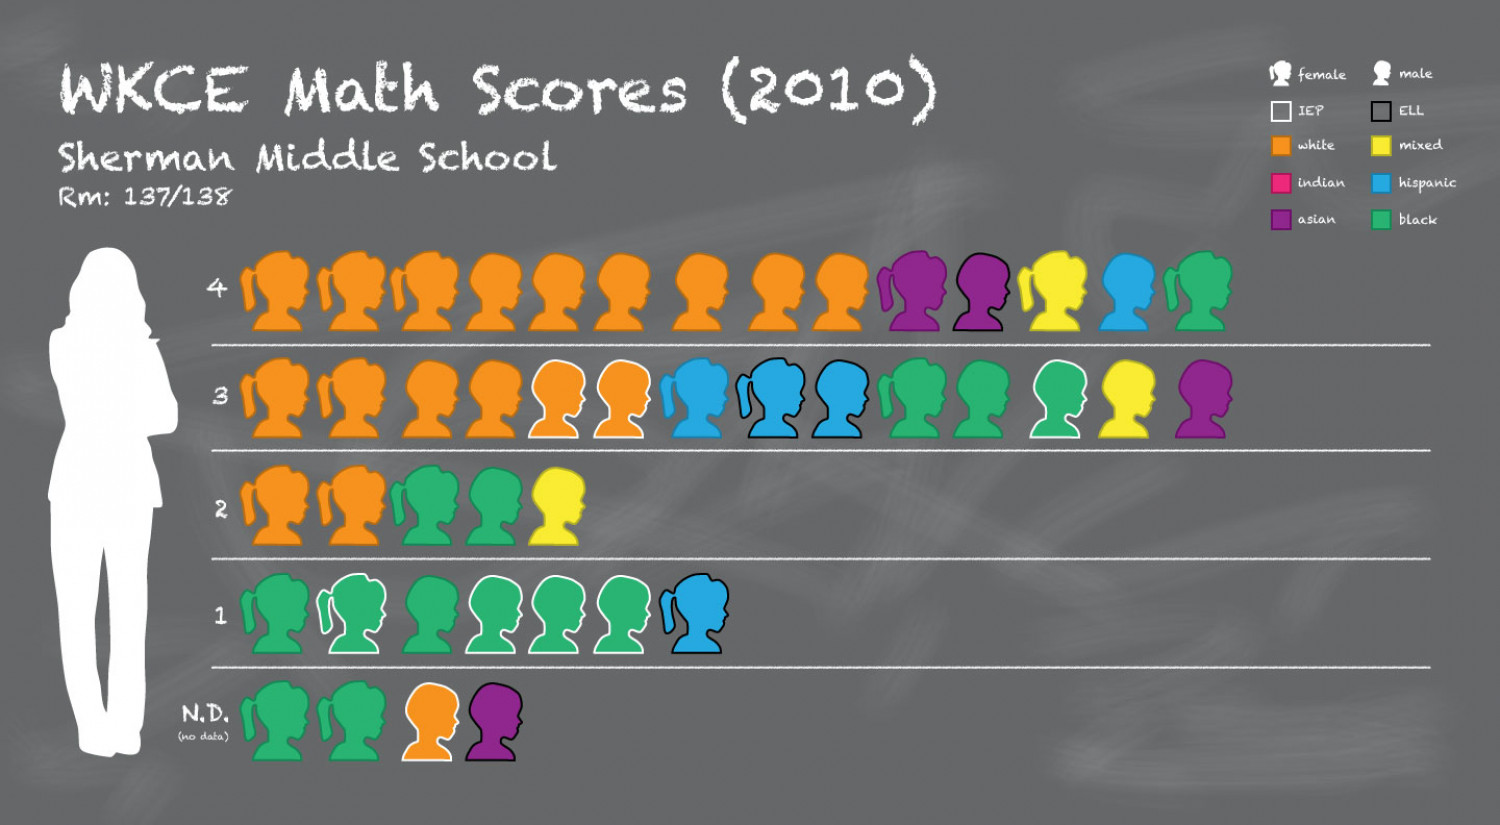 WKCE Math and Reading Scores Infographic